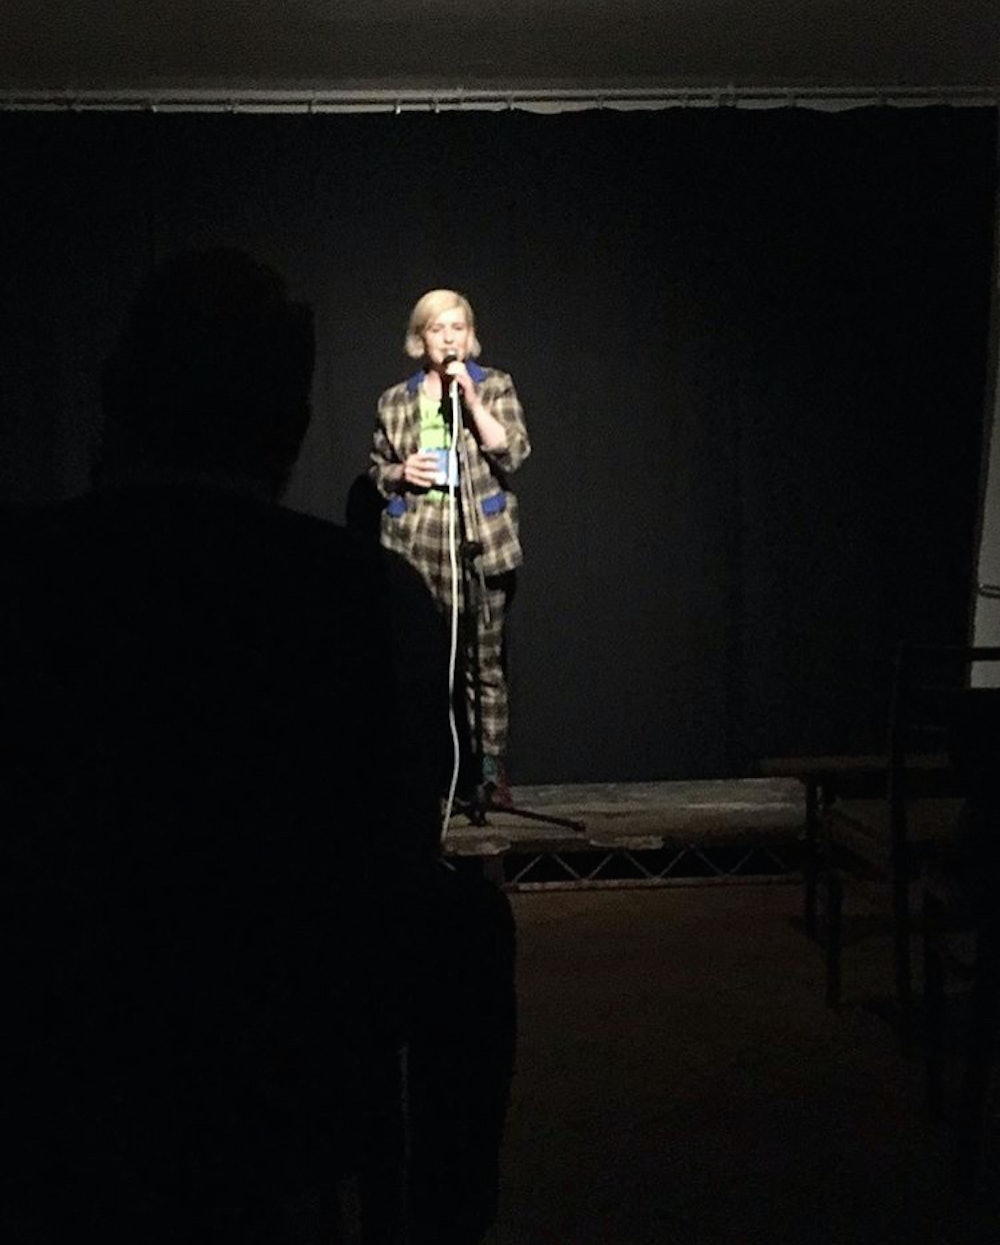 I Was A Stand-Up Comedian & What I Learned Will Change Your Whole